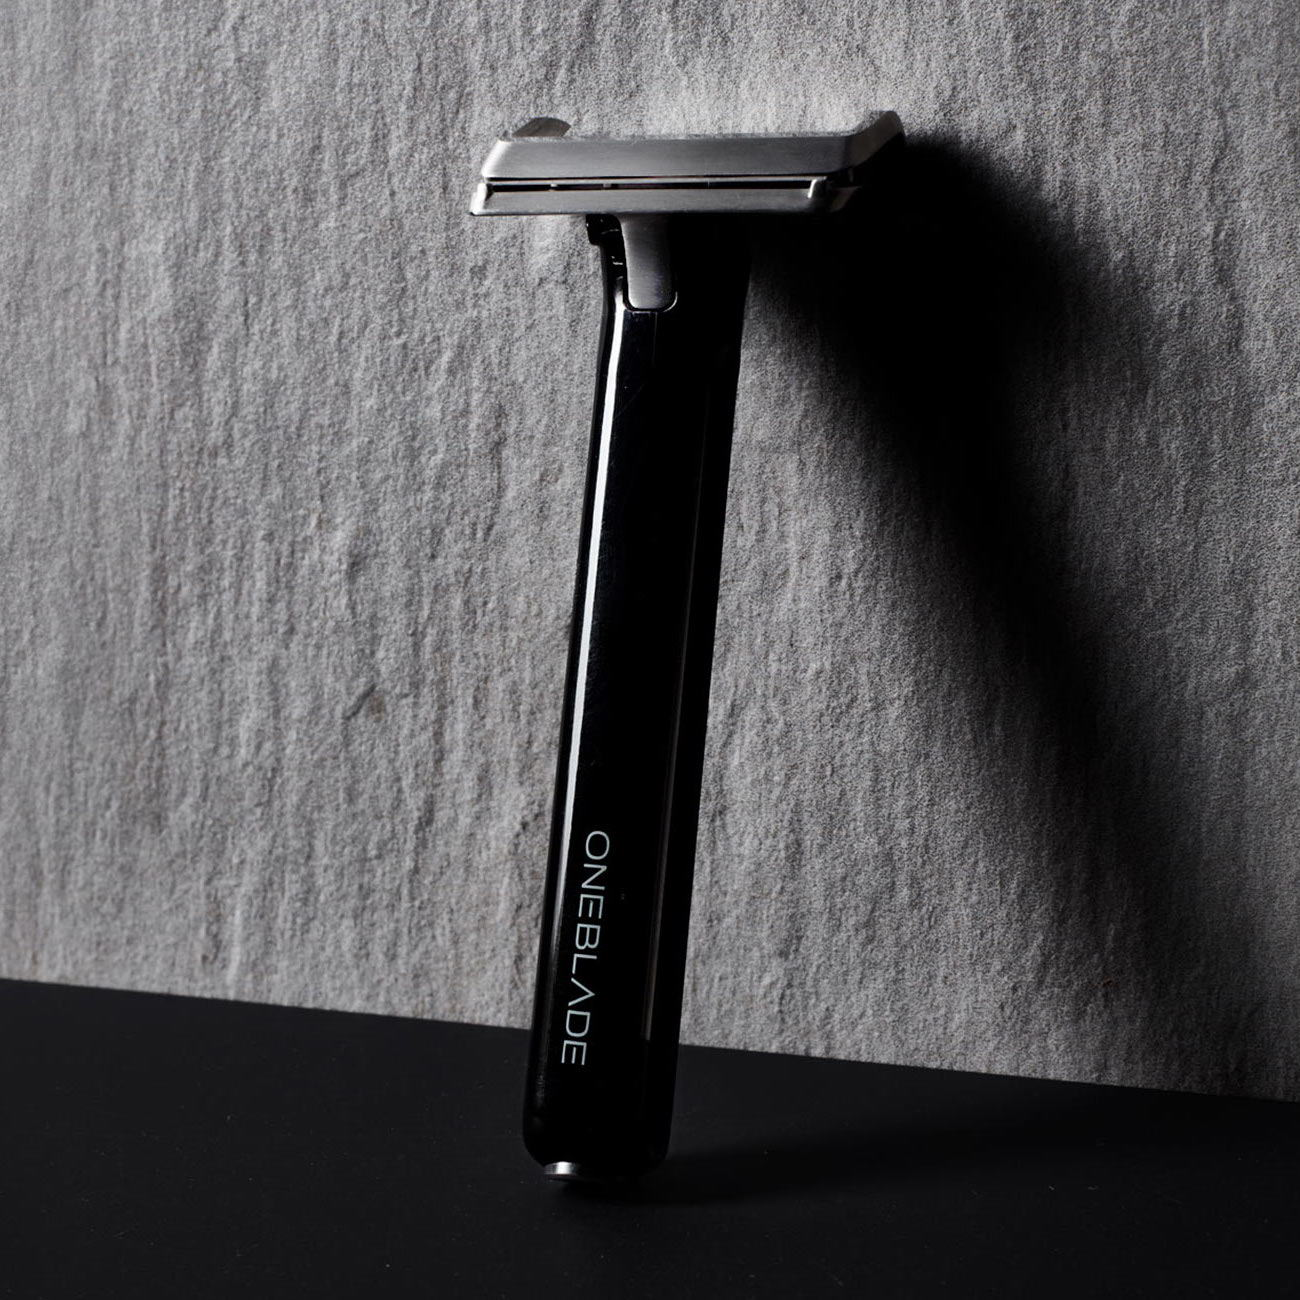 OneBlade razor laying against a wall